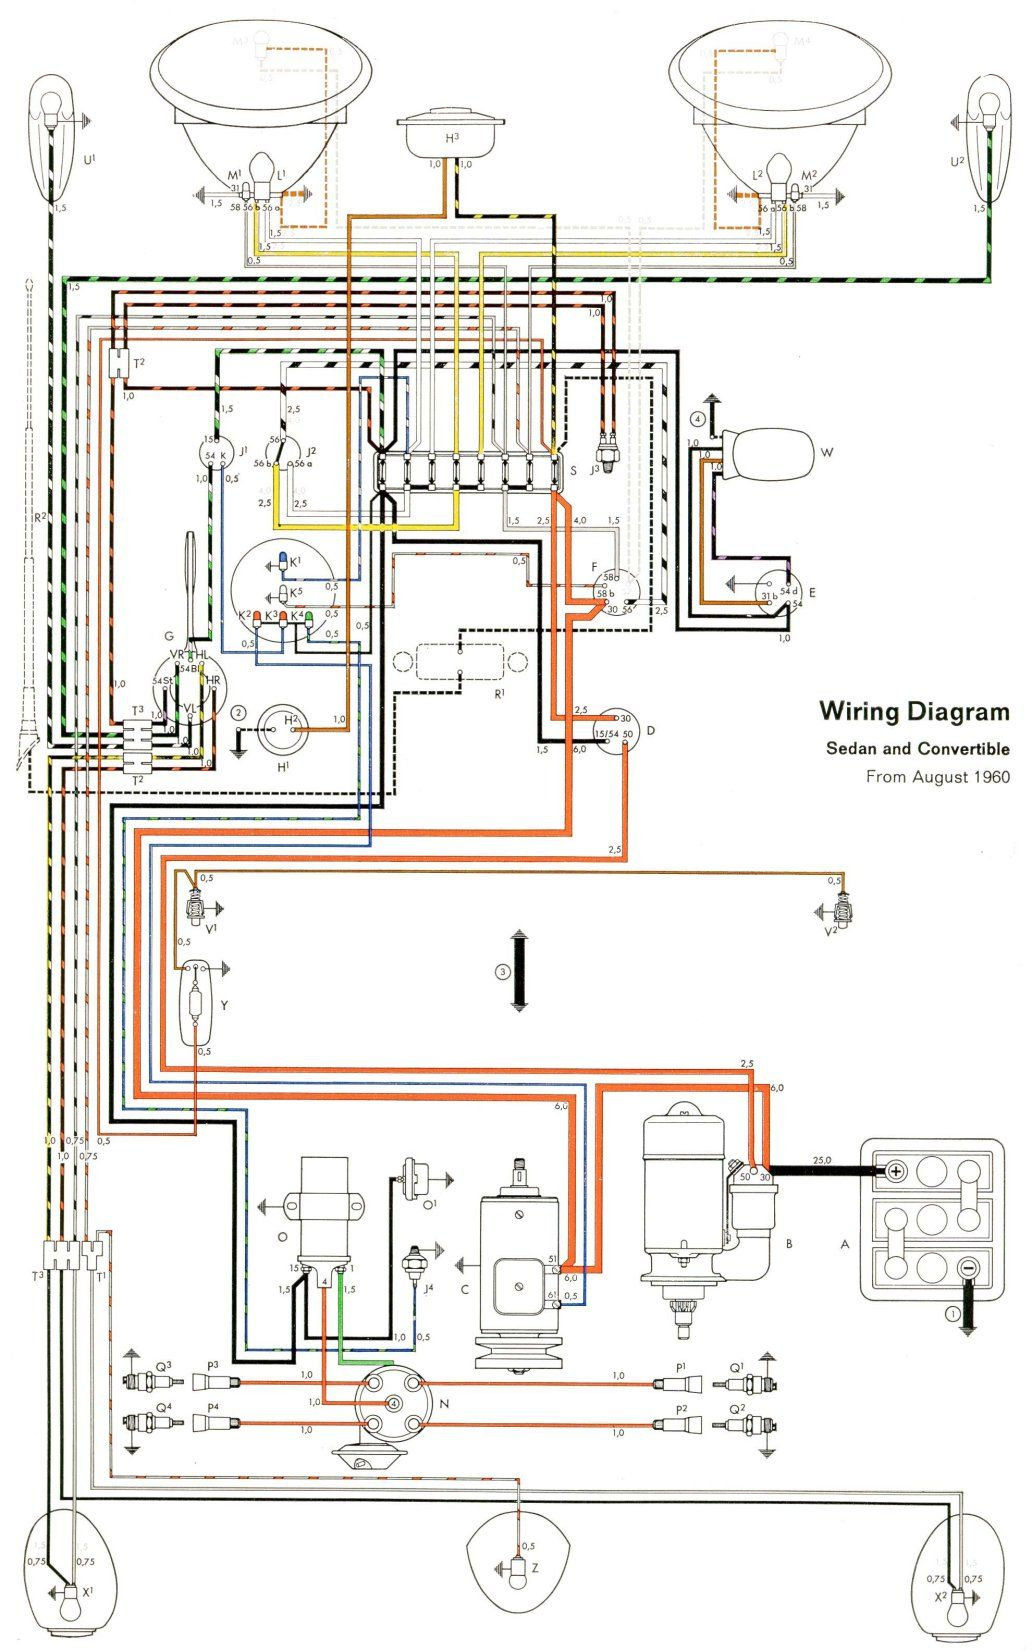 1961 Beetle Wiring Diagram Bug Stuff